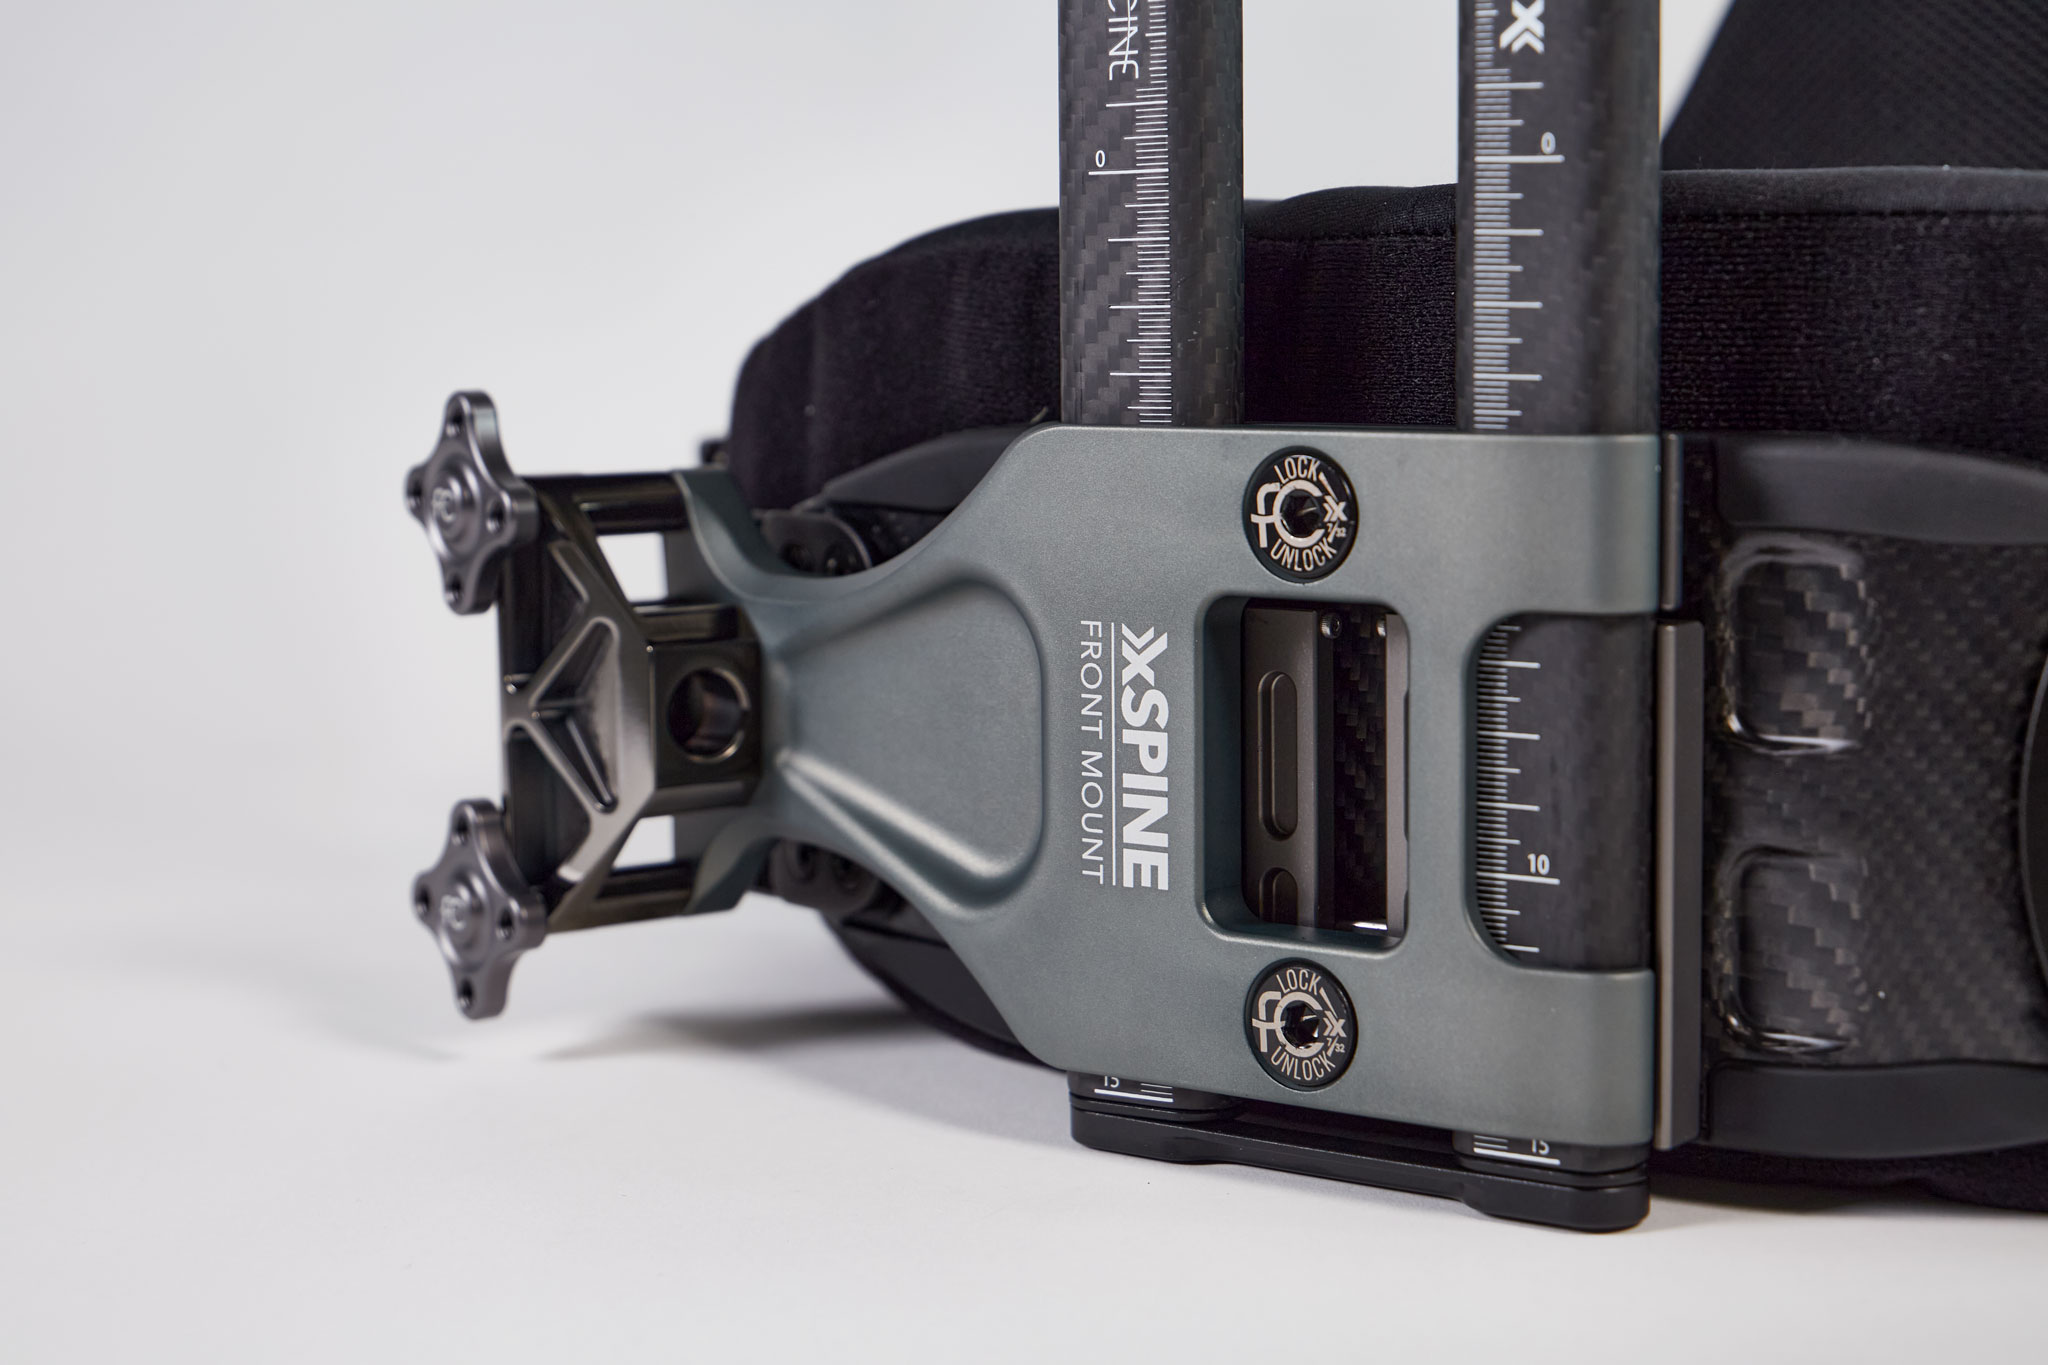 xSPINE with front mount